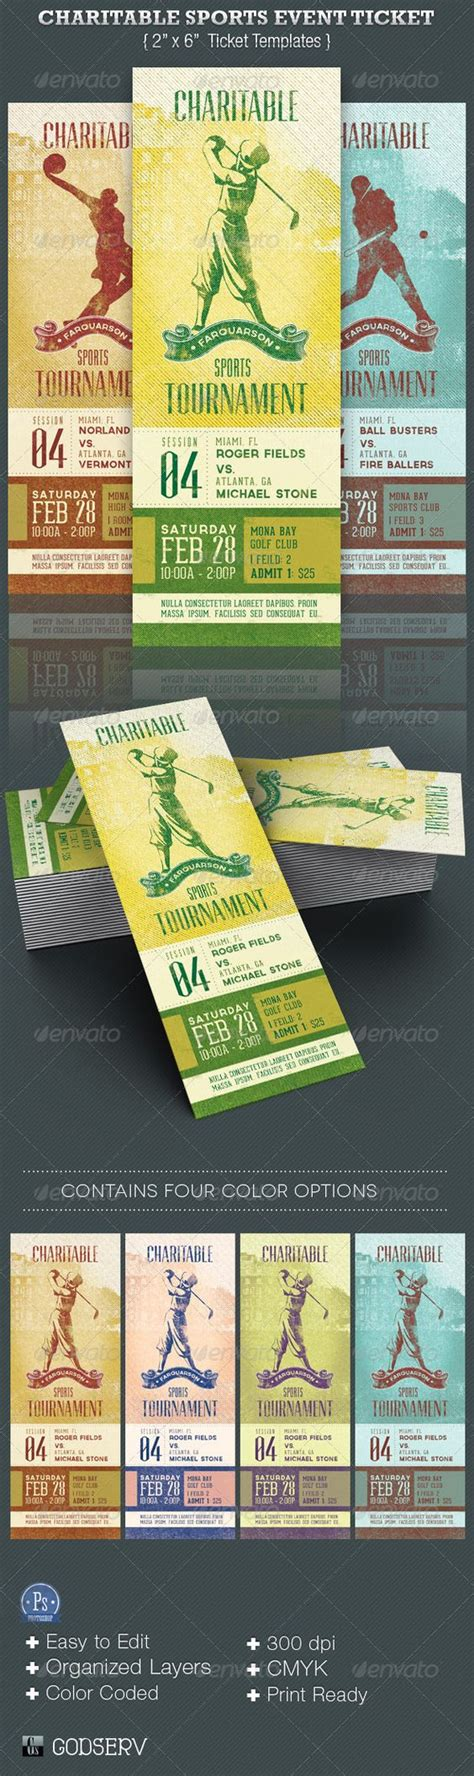 charitable sports event ticket template sports events